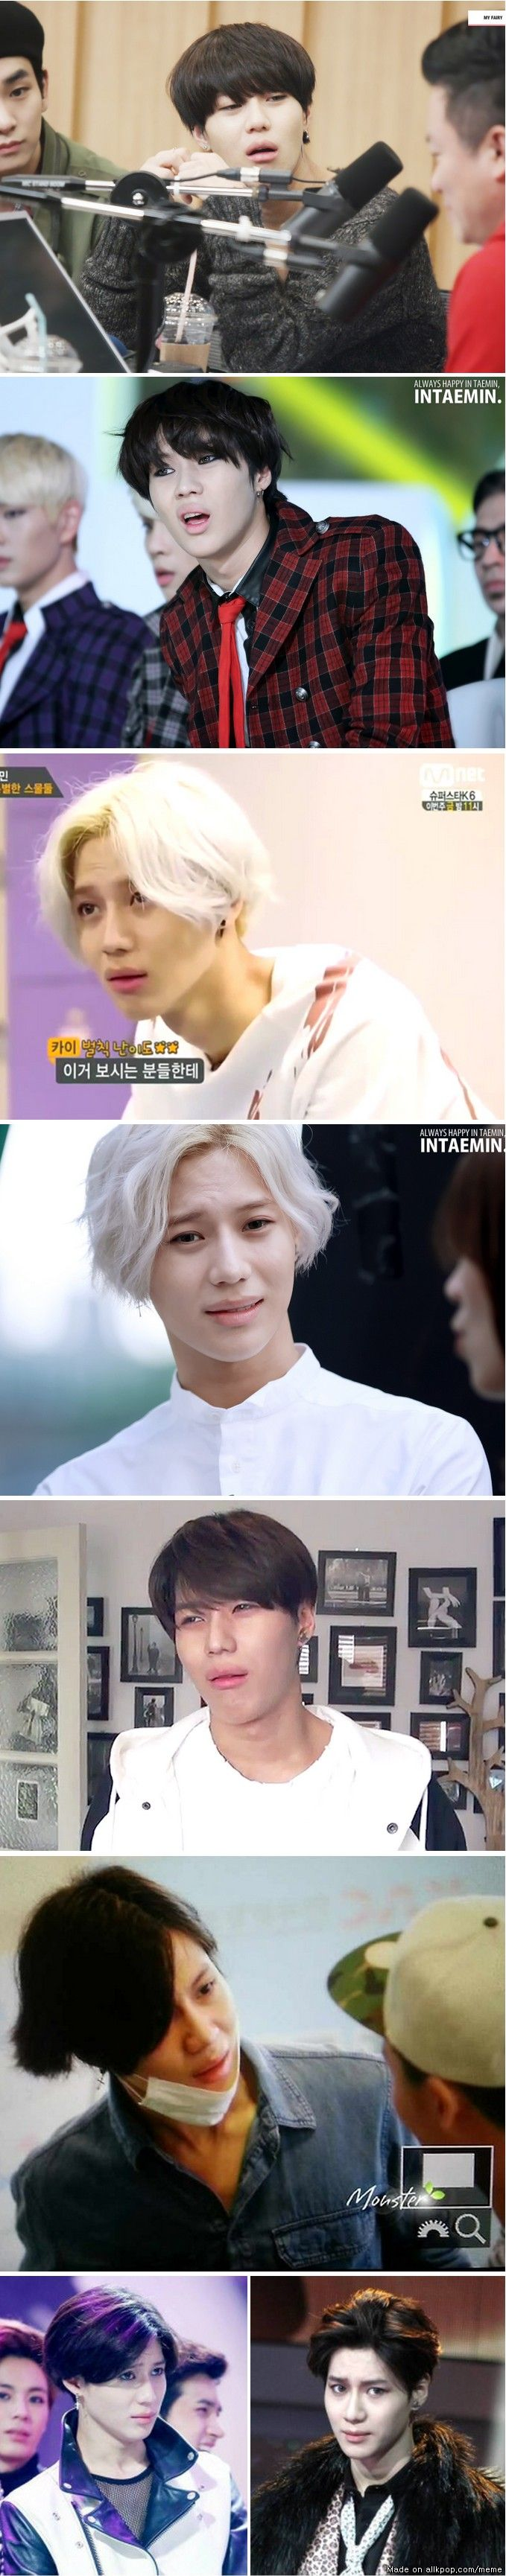 Taemin's judging face is a masterpiece lol - i can't unsee him as heechul's daughter.. kekeke